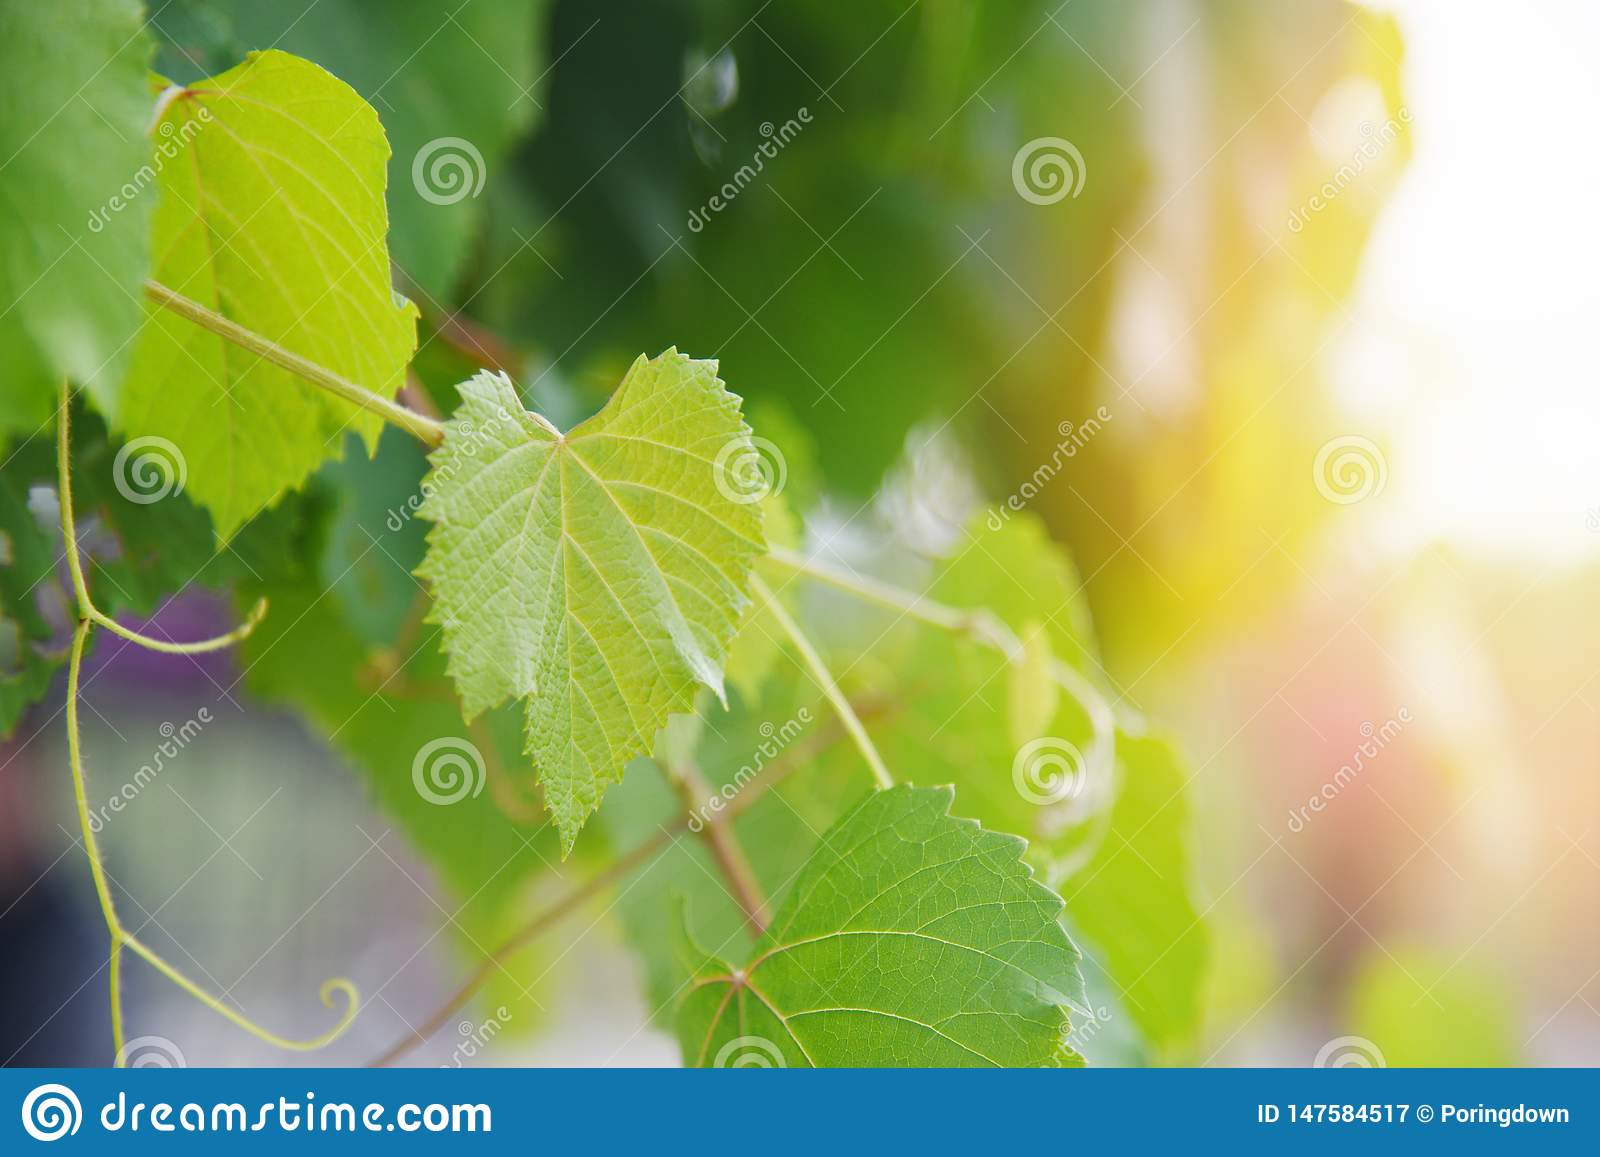 Grape vine green leaves on branch tropical plant in the vineyard nature